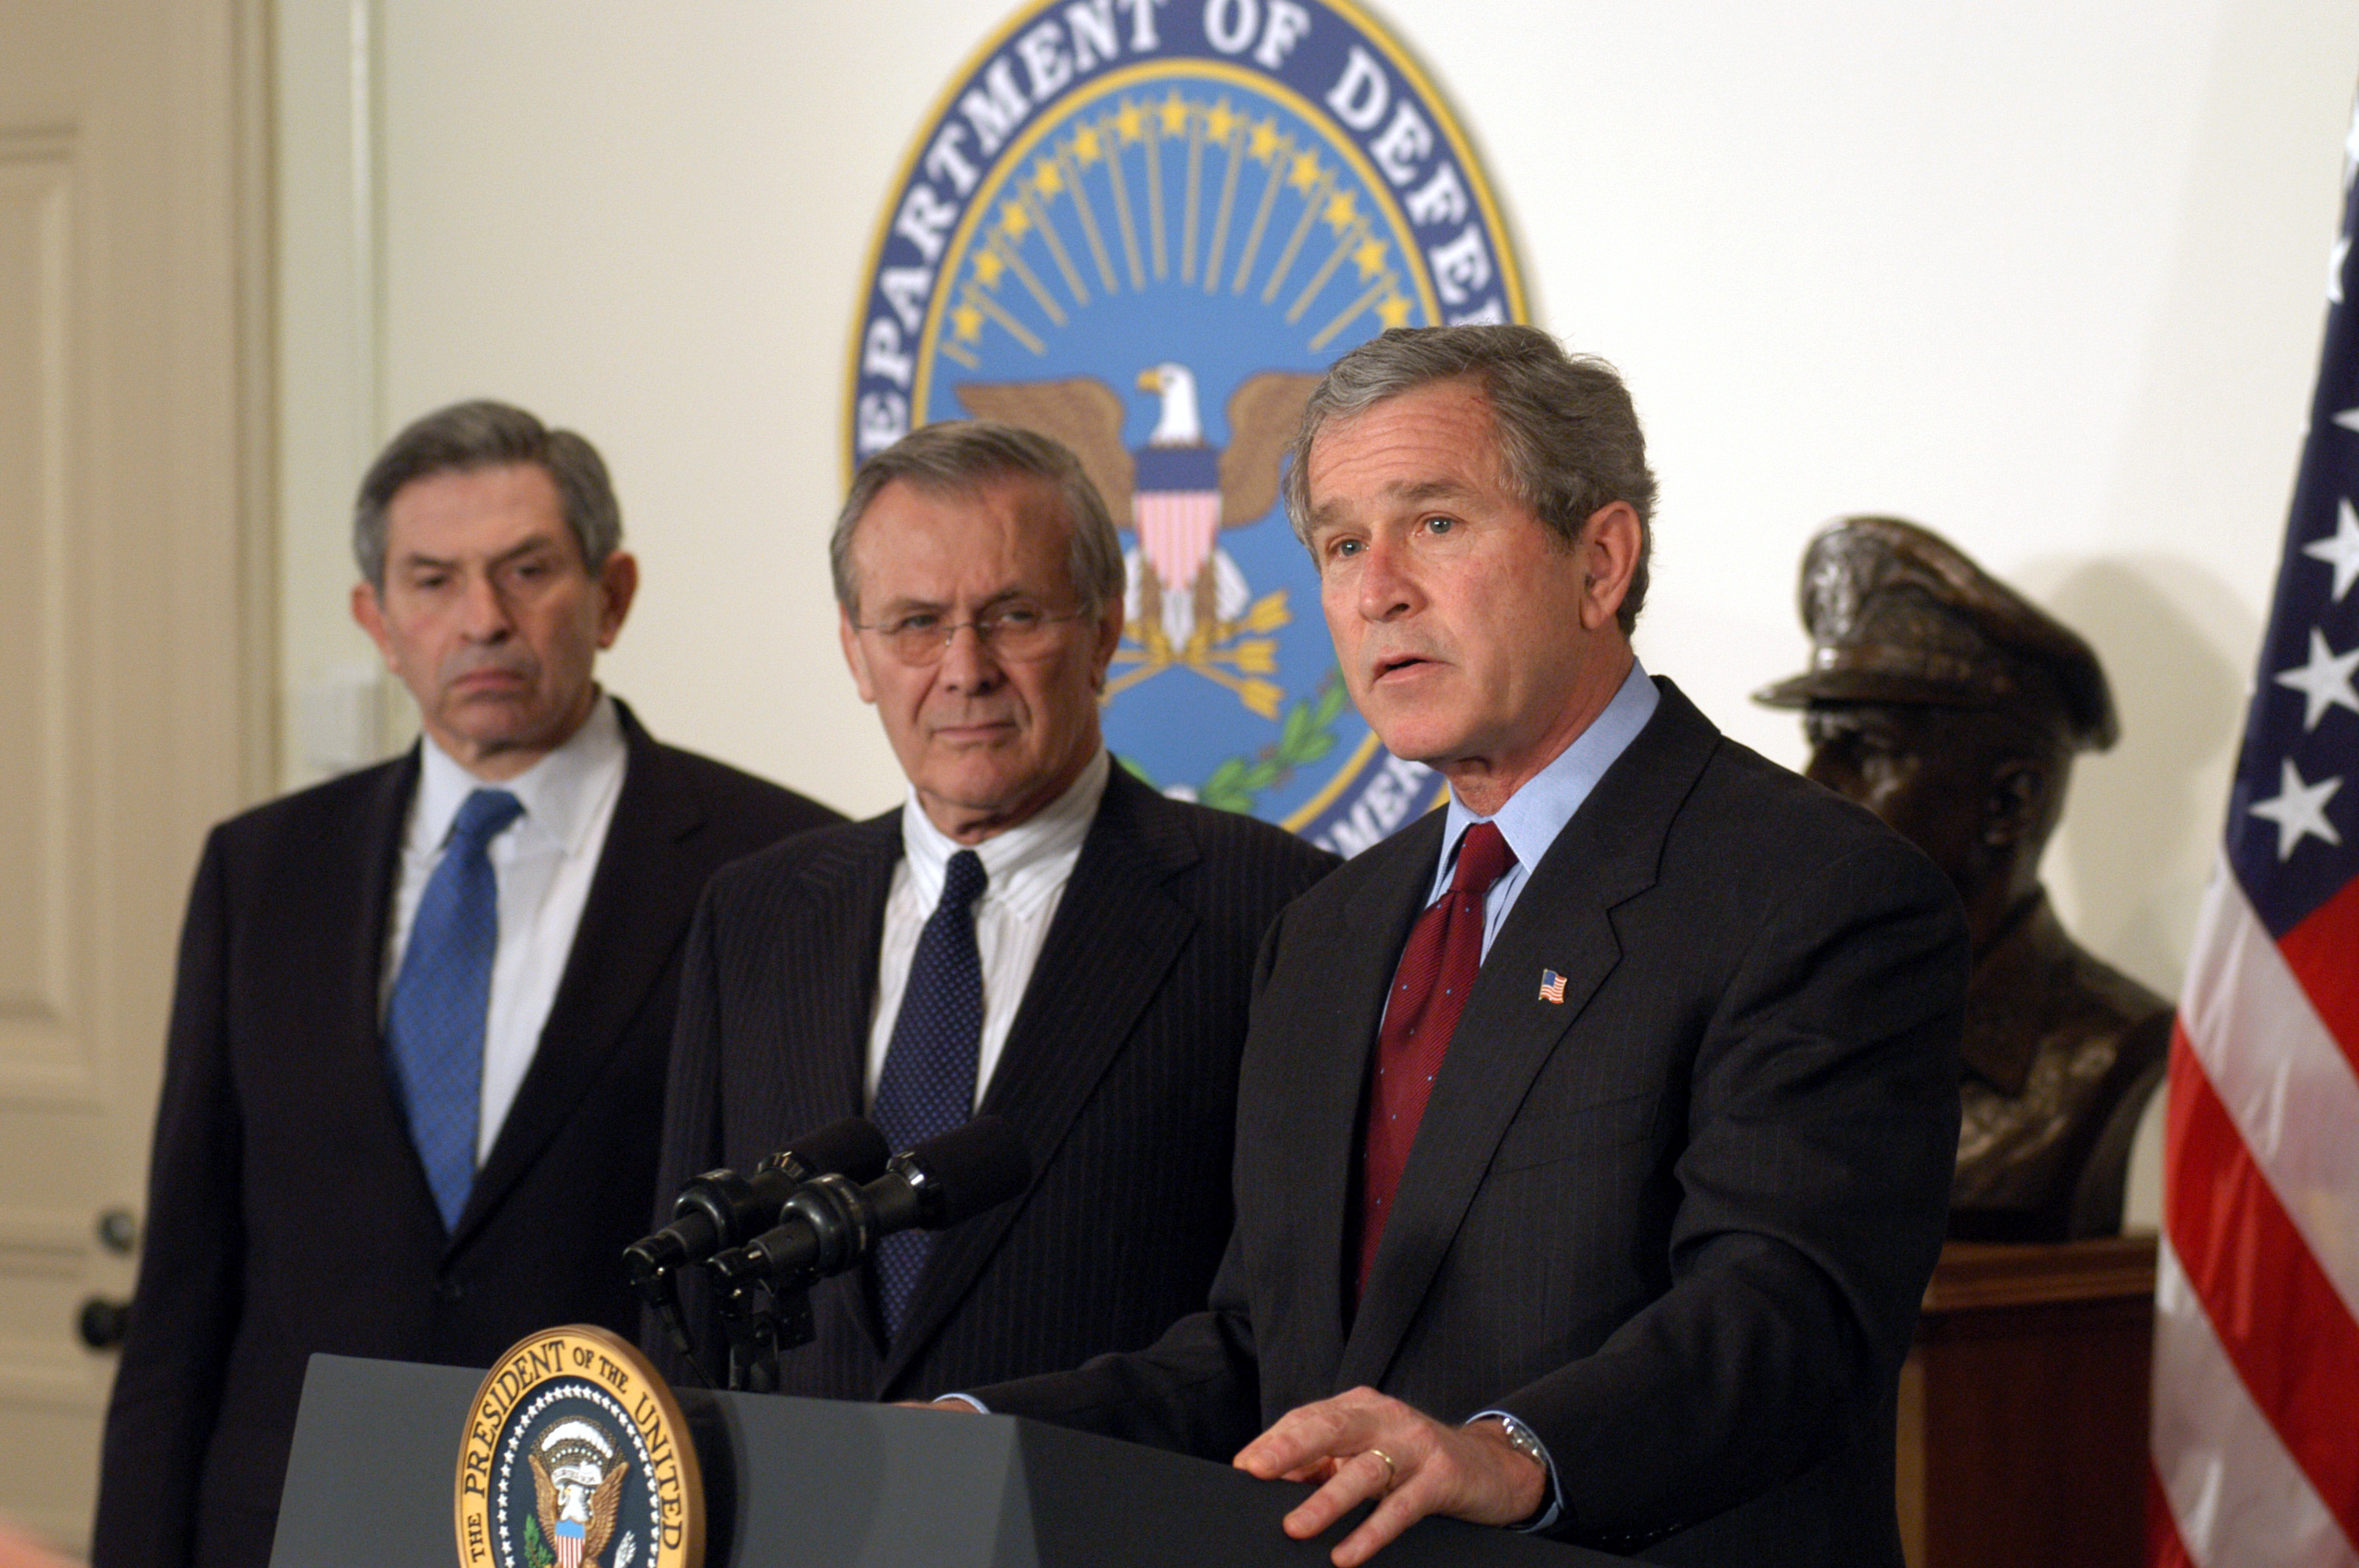 President George W. Bush announces his $74.7 billion wartime supplemental budget request at the Pentagon as Secretary of Defense Donald H. Rumsfeld (center) and Deputy Secretary of Defense Paul Wolfowitz (left) look on.  The President visited the Pentagon to meet with senior defense leadership and to announce the supplemental request which, once appropriated by Congress, will pay for the direct costs of Operation Iraqi Freedom and the global war against terror.  DoD photo by R.D. Ward.  (RELEASED)